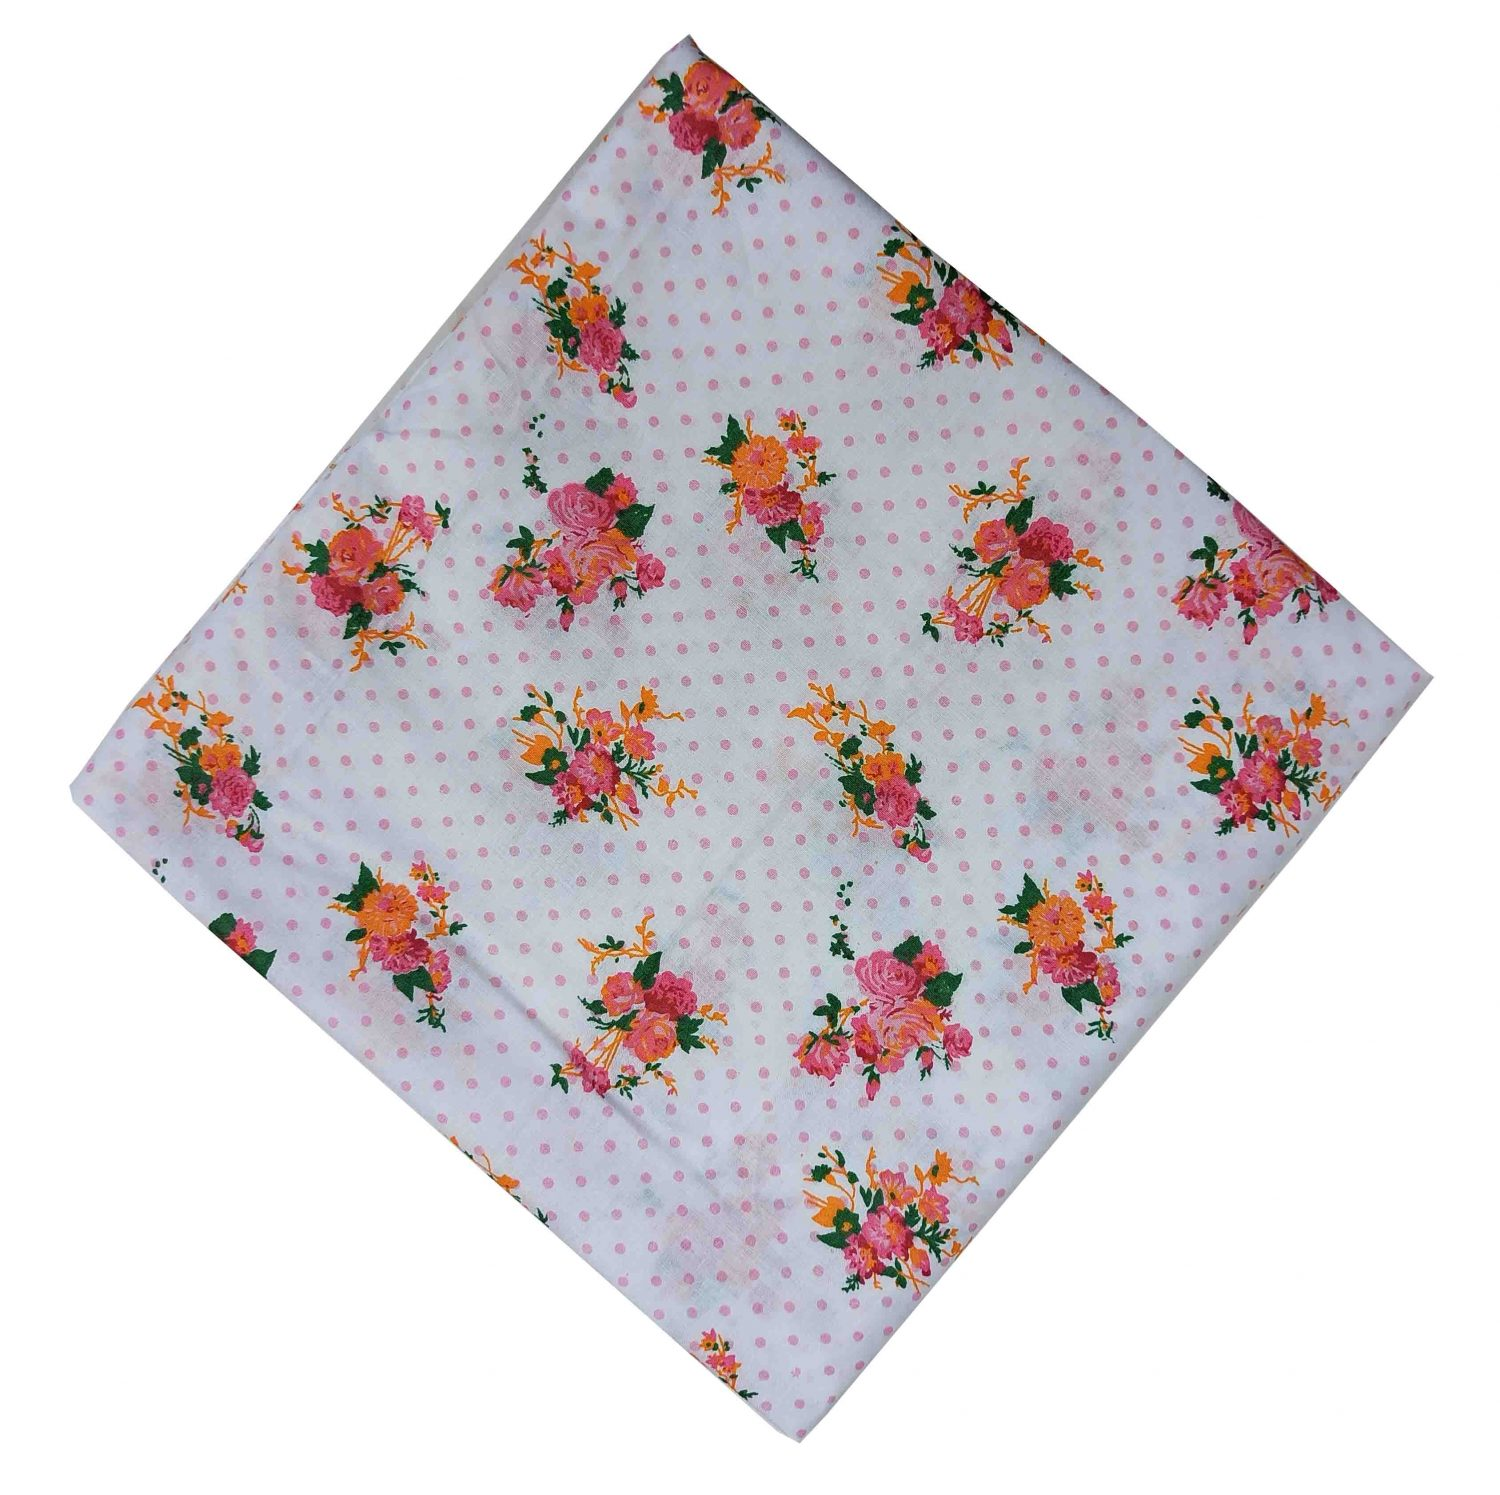 Pink Flowers on White Base Printed Cotton Fabric PC520 1